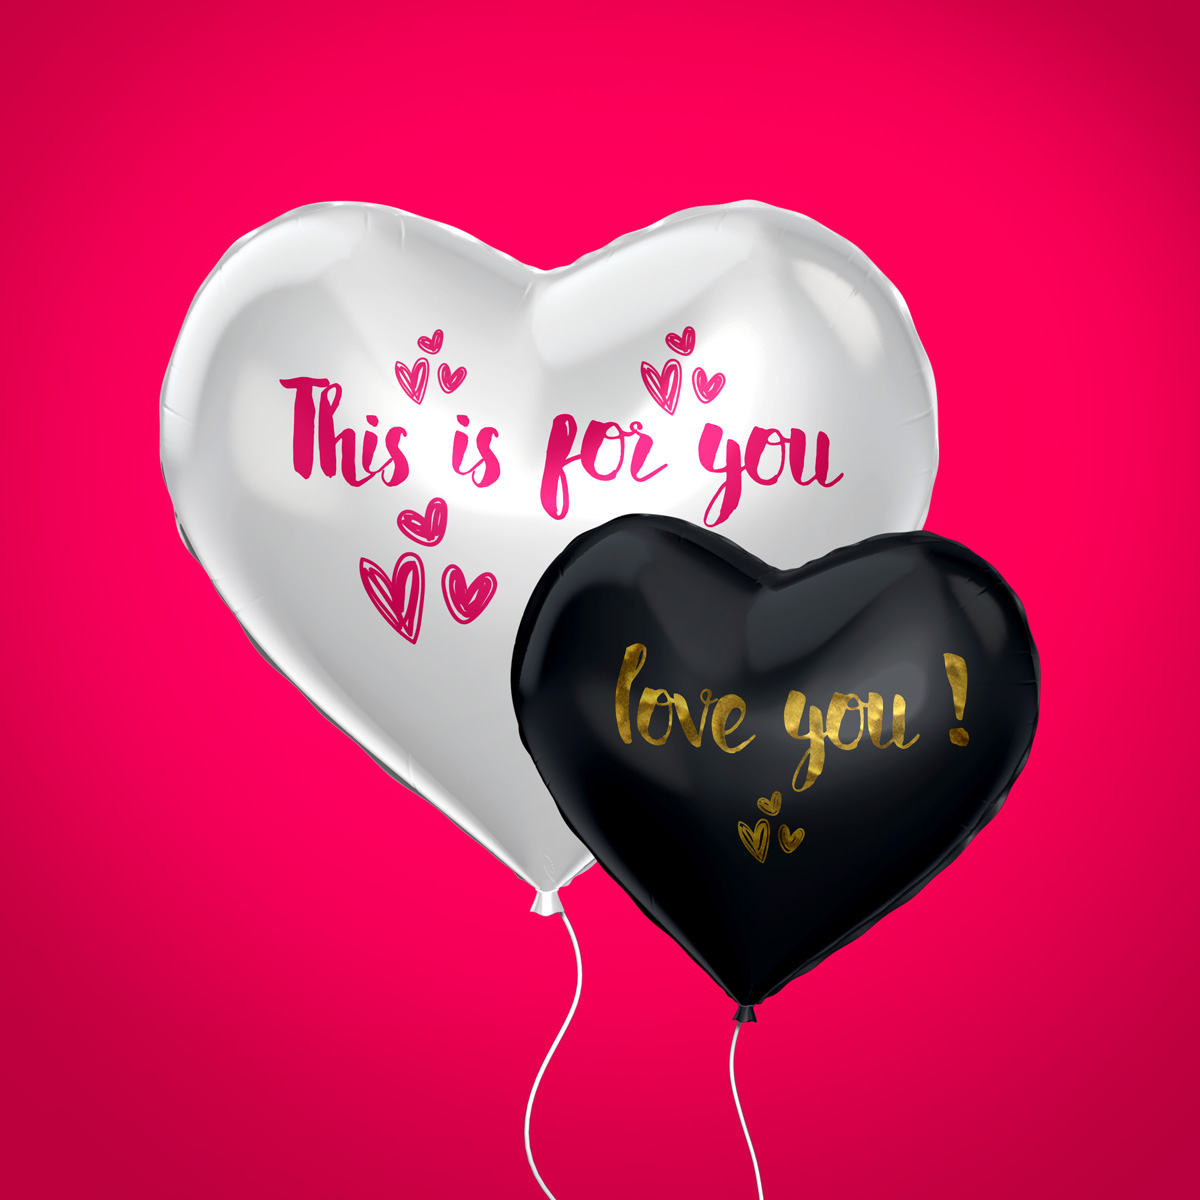 Two Heart Balloons - Photoshop psd